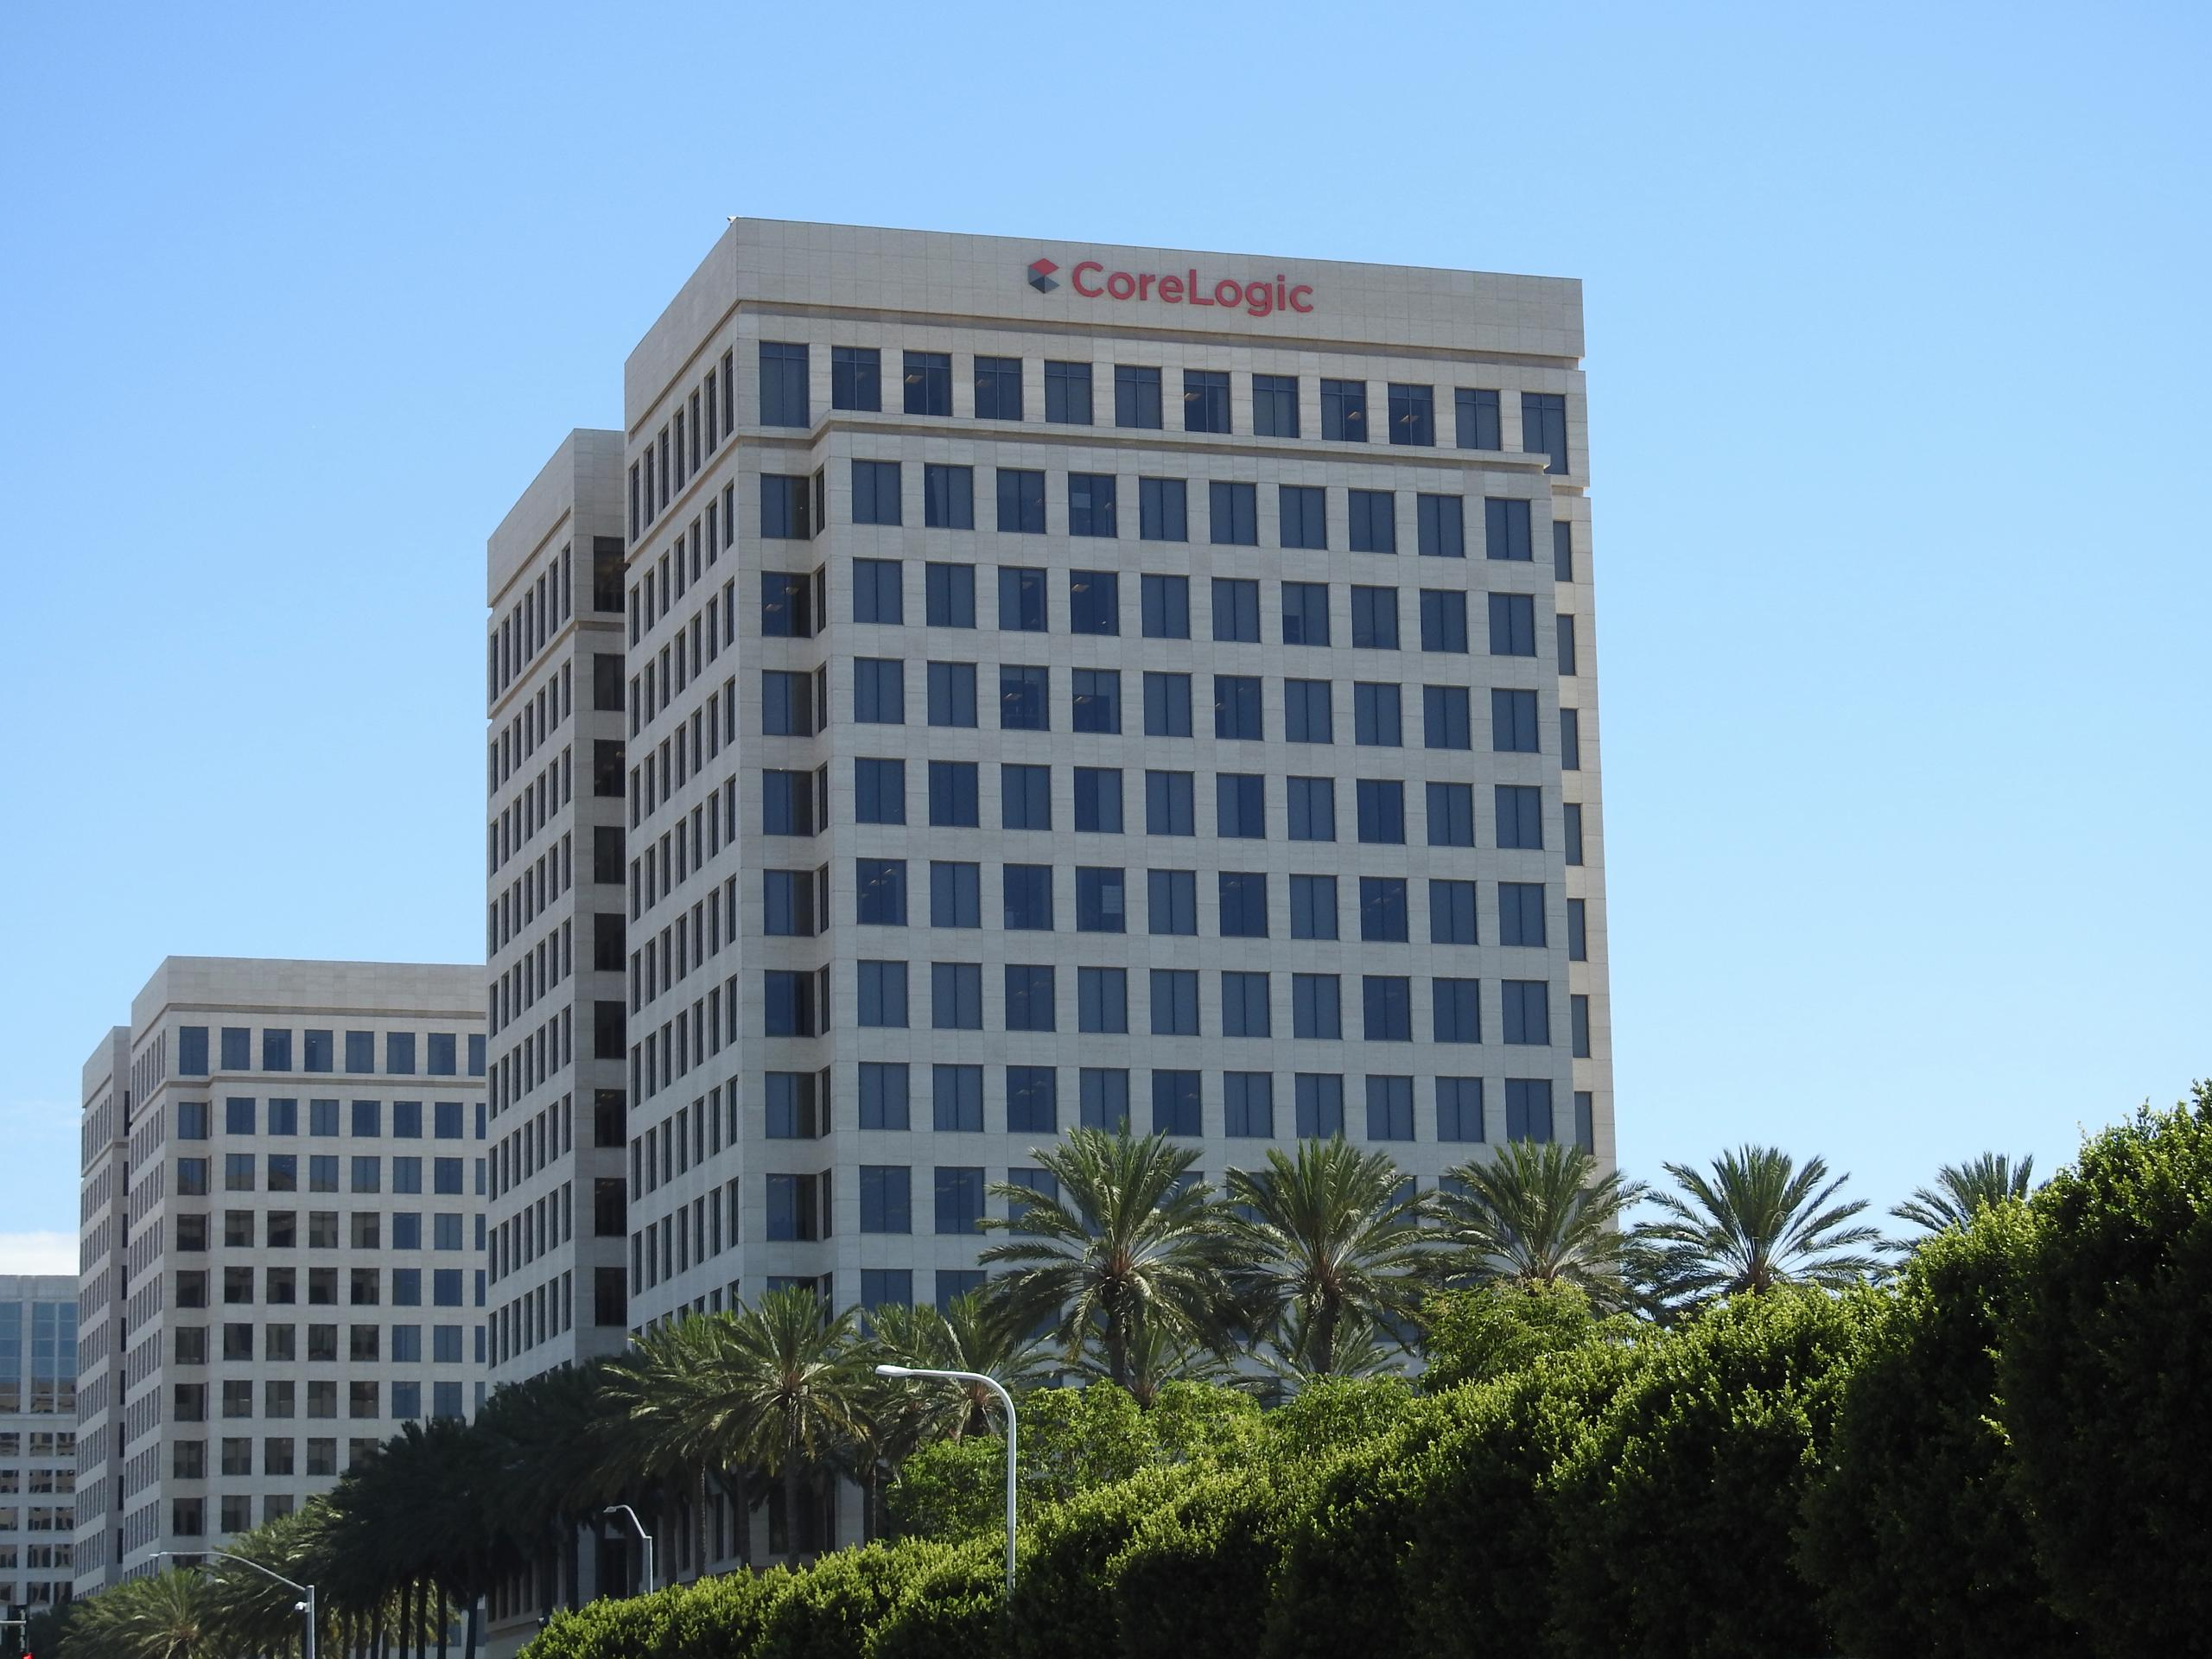 CoreLogic's corporate headquarters in Irvine, California.